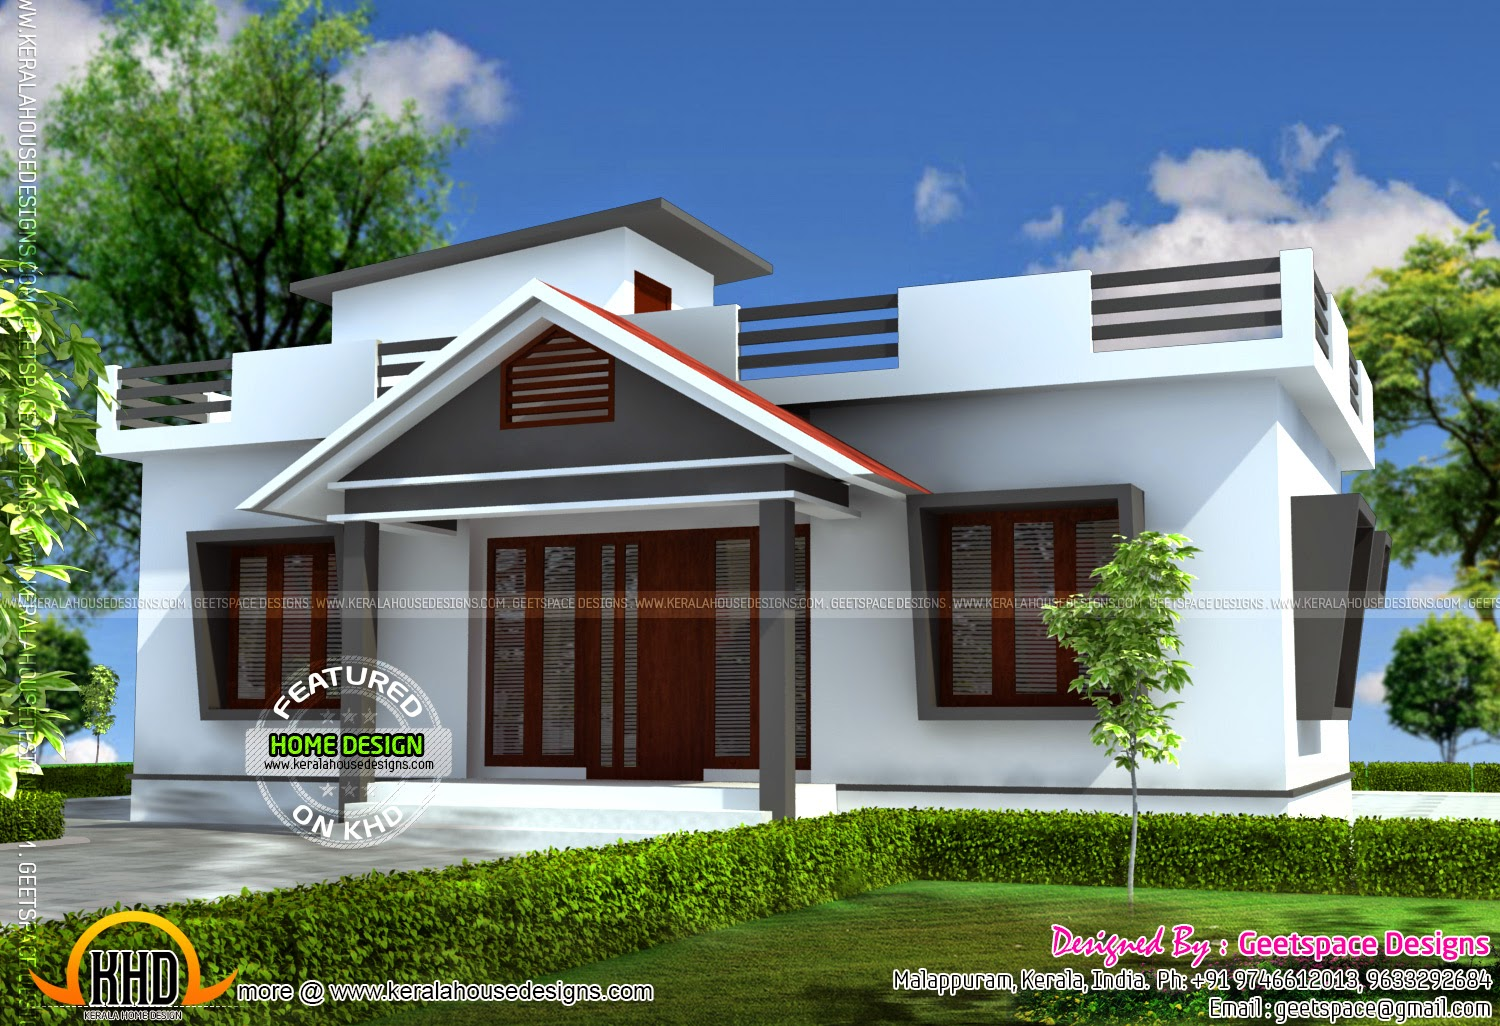 Modern Bungalow House Plans September 2014 Kerala Home Design And Floor Plans